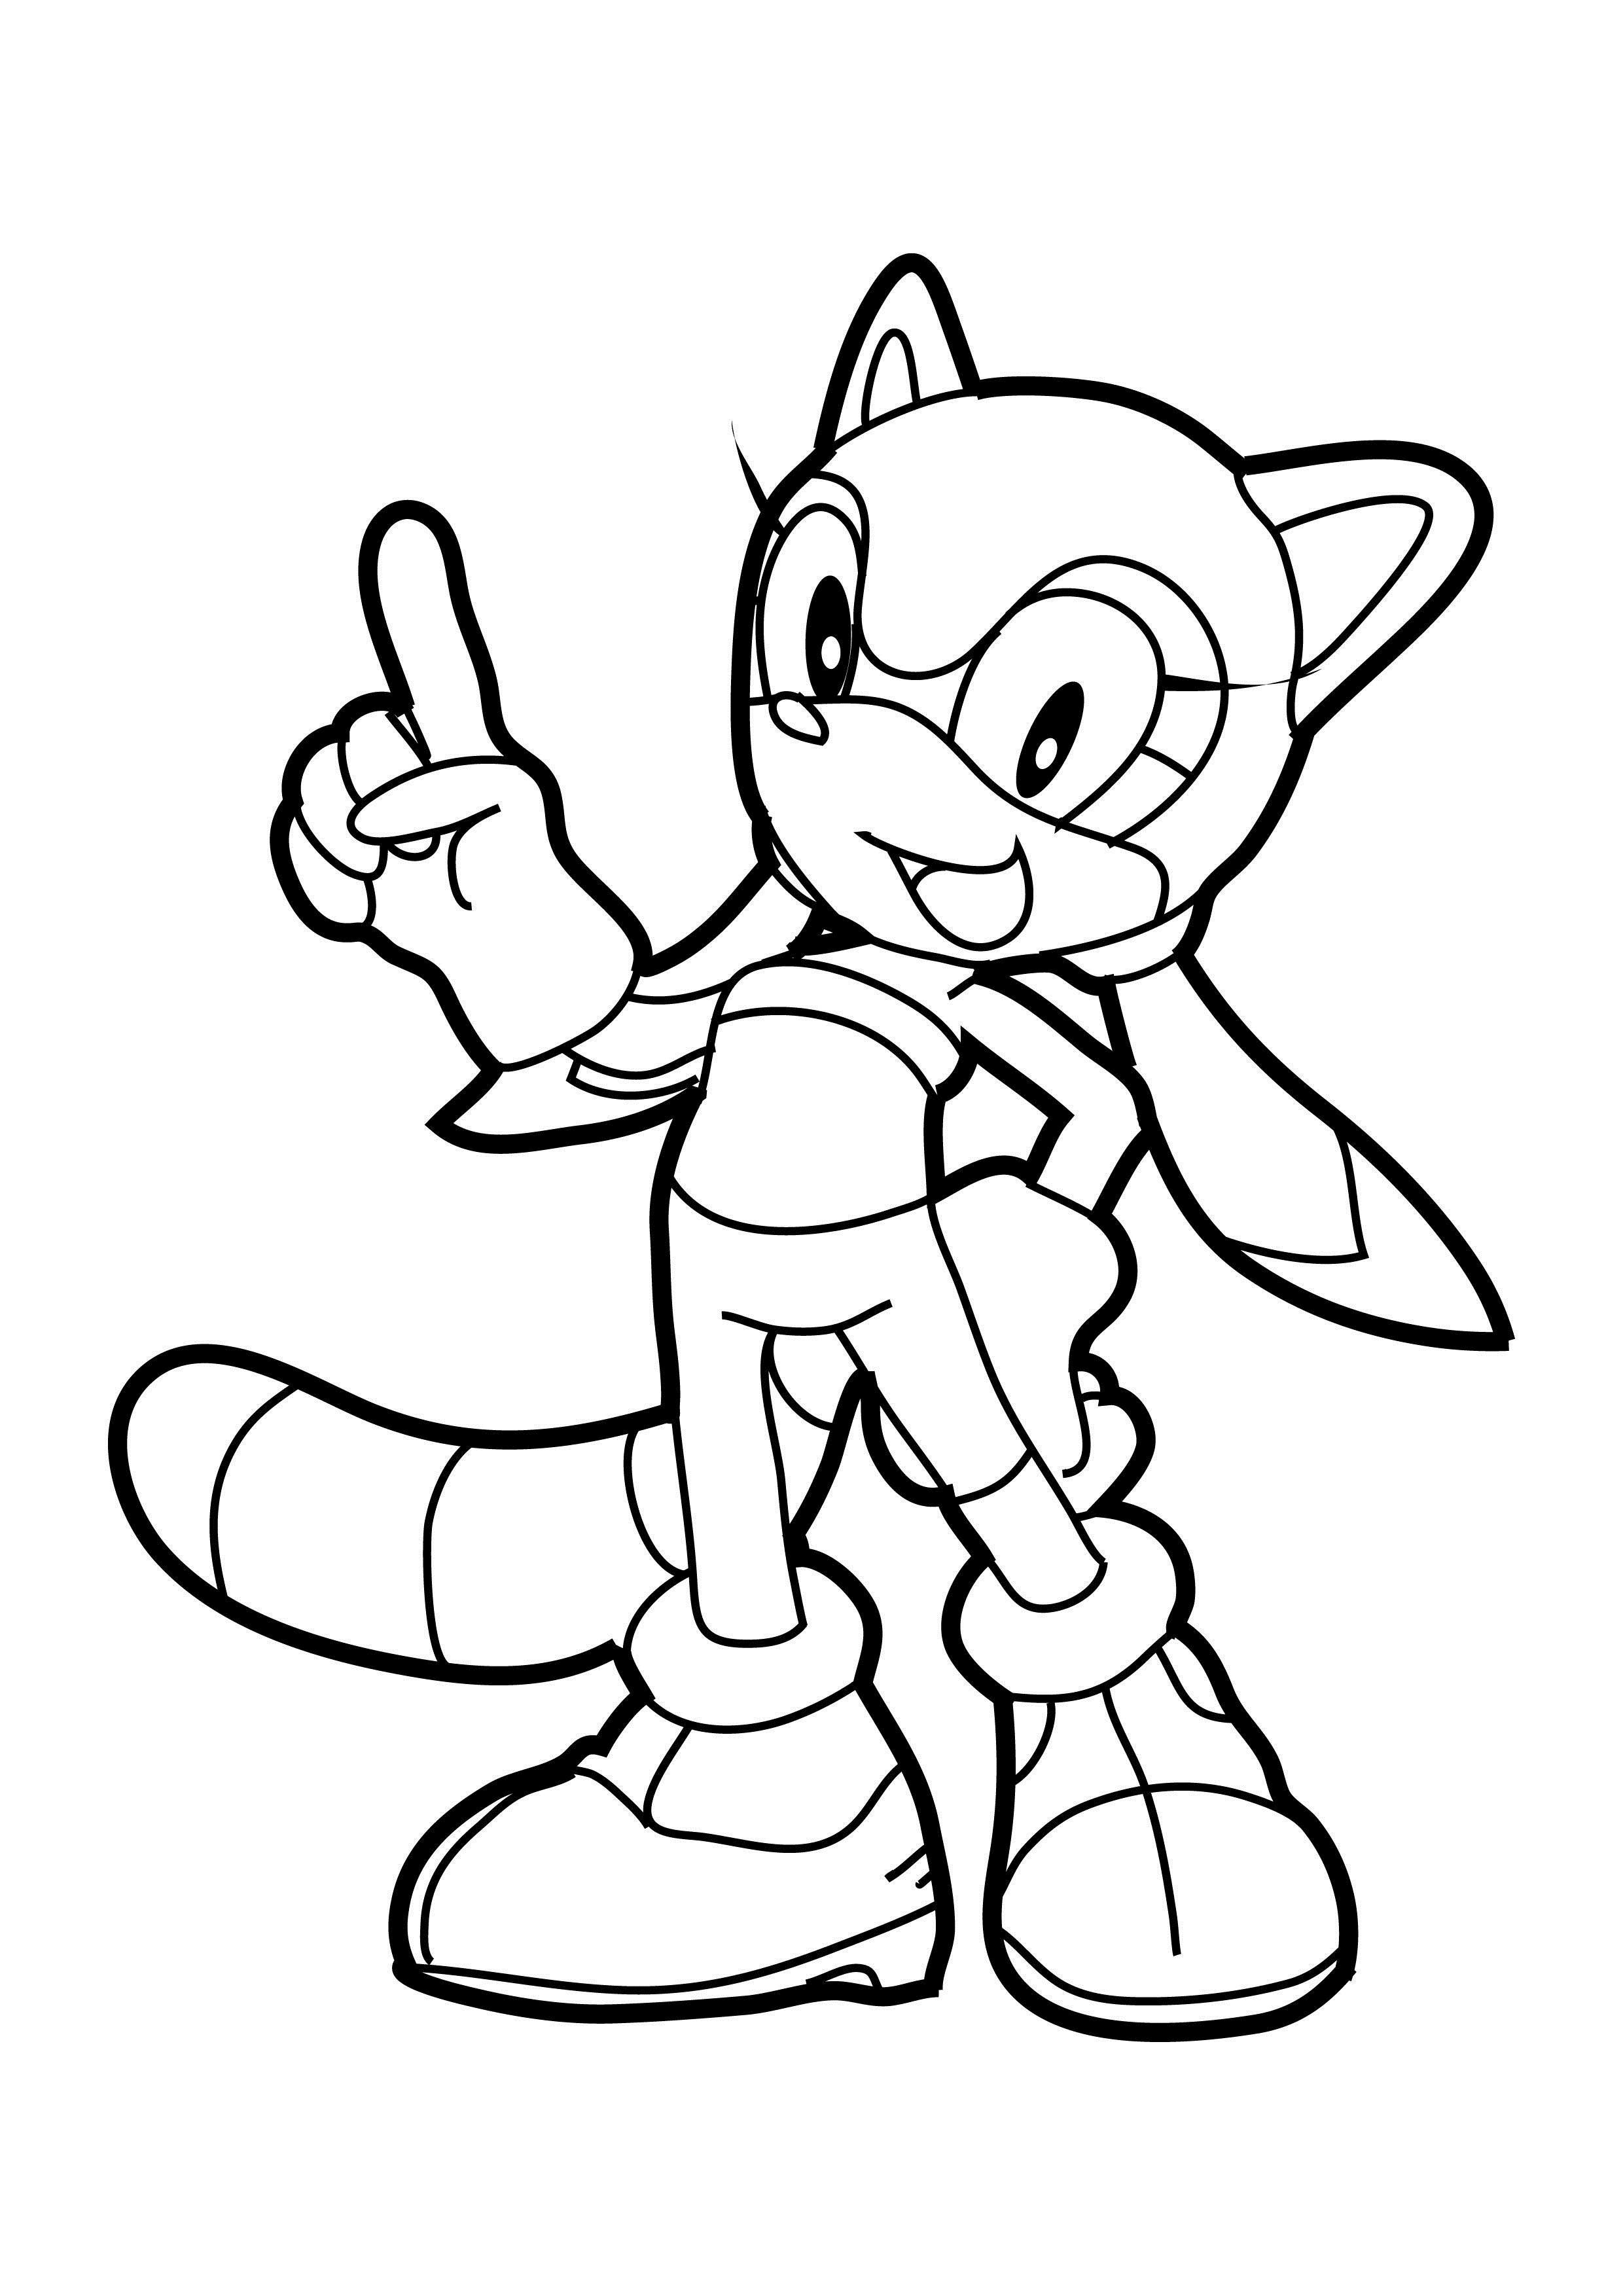 2480x3508 Best Of Coloring Pages Of Sonic And Friends Best Of Sonic